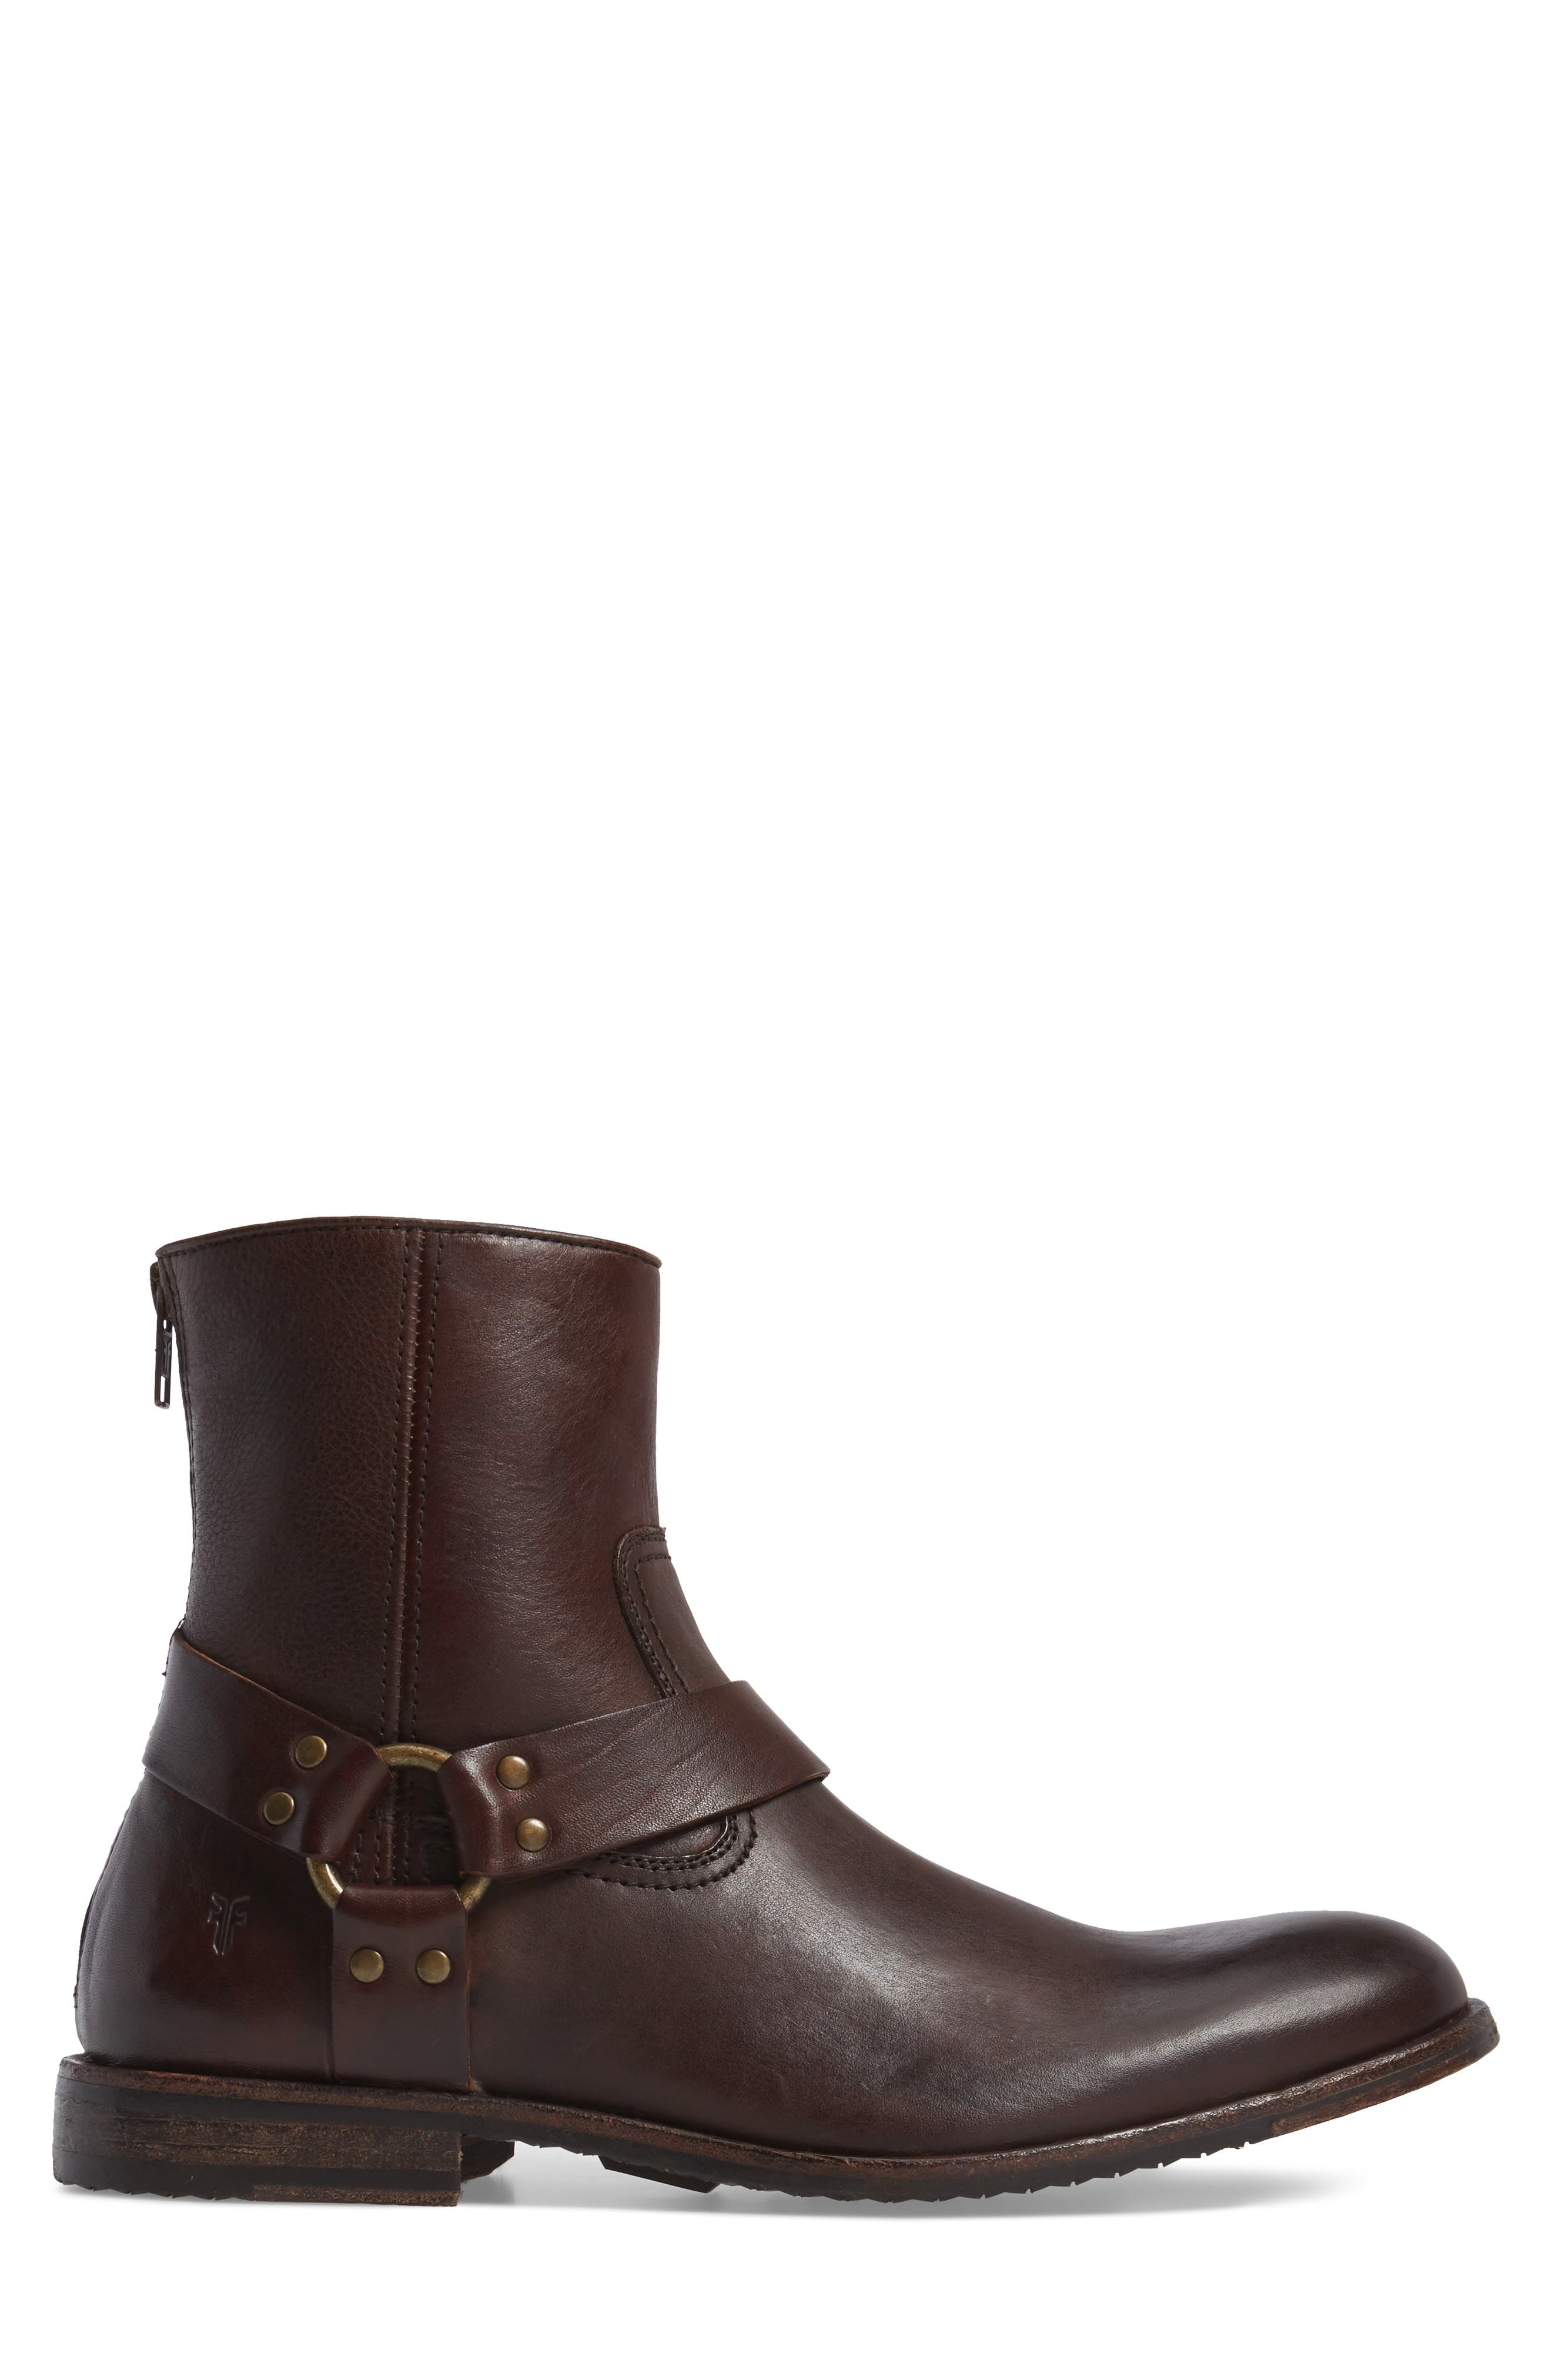 Sam Harness Boot,                             Alternate thumbnail 3, color,                             Dark Brown Leather